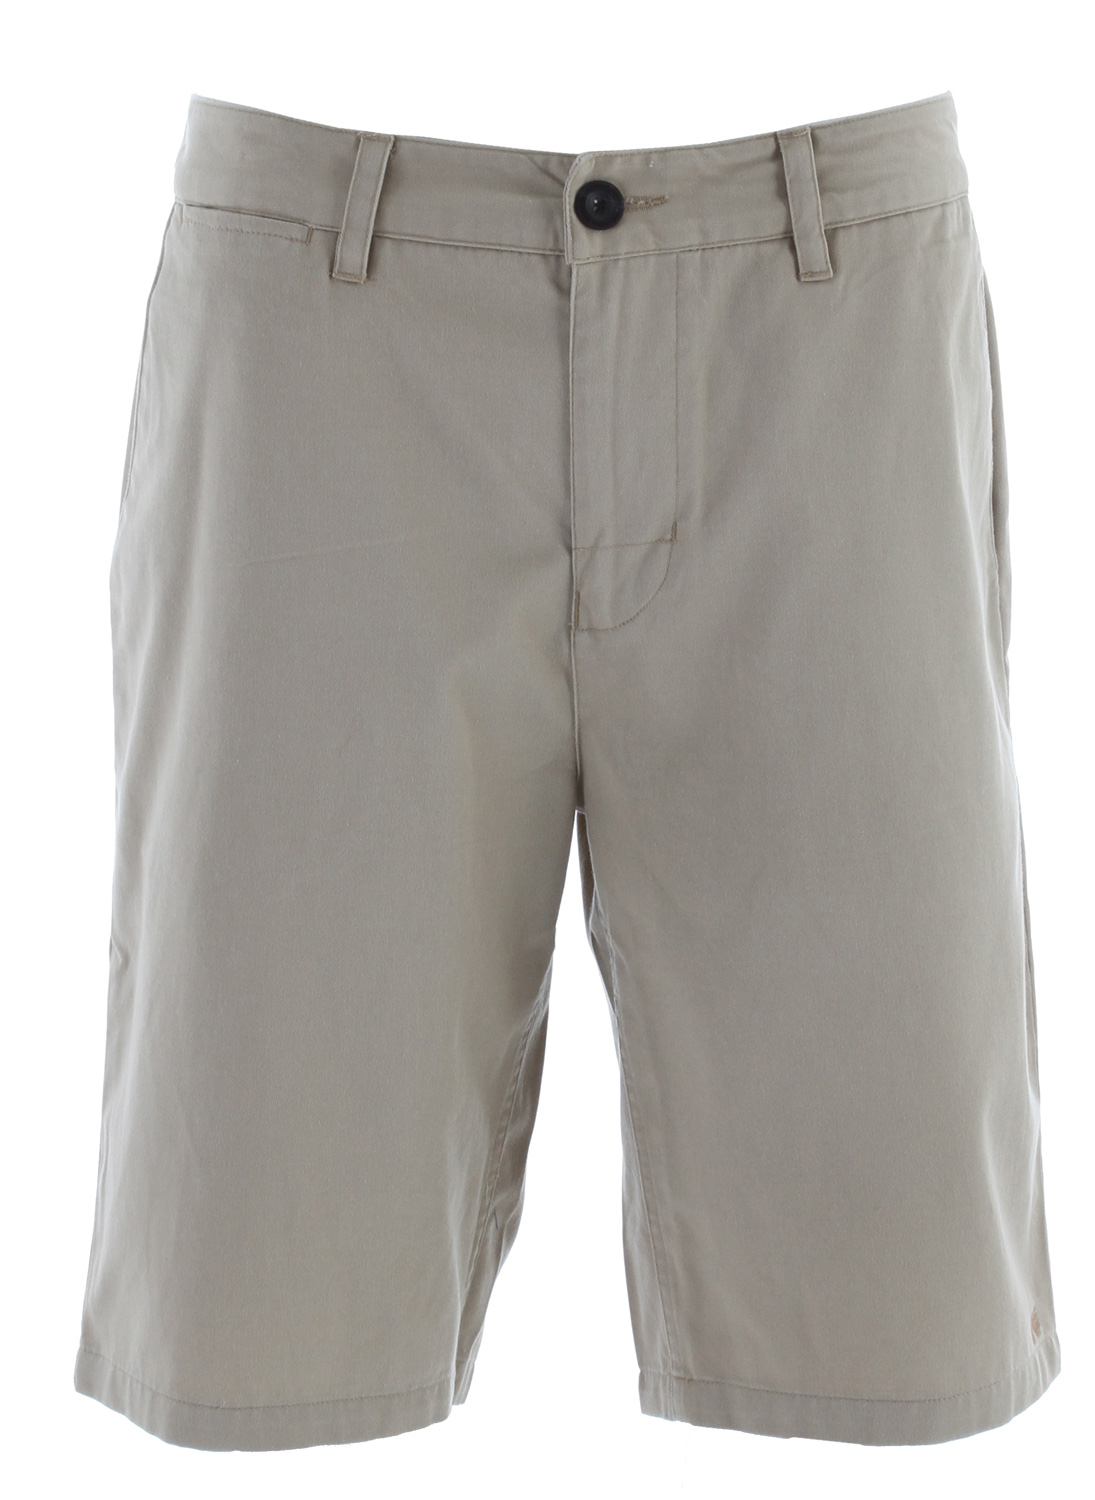 "Key Features of the Analog Chino 22"" Shorts: 22"" chino short with interior waistband detail and work wear labeling 55% Cotton / 45% Polyester with Wheel Wash - $33.95"